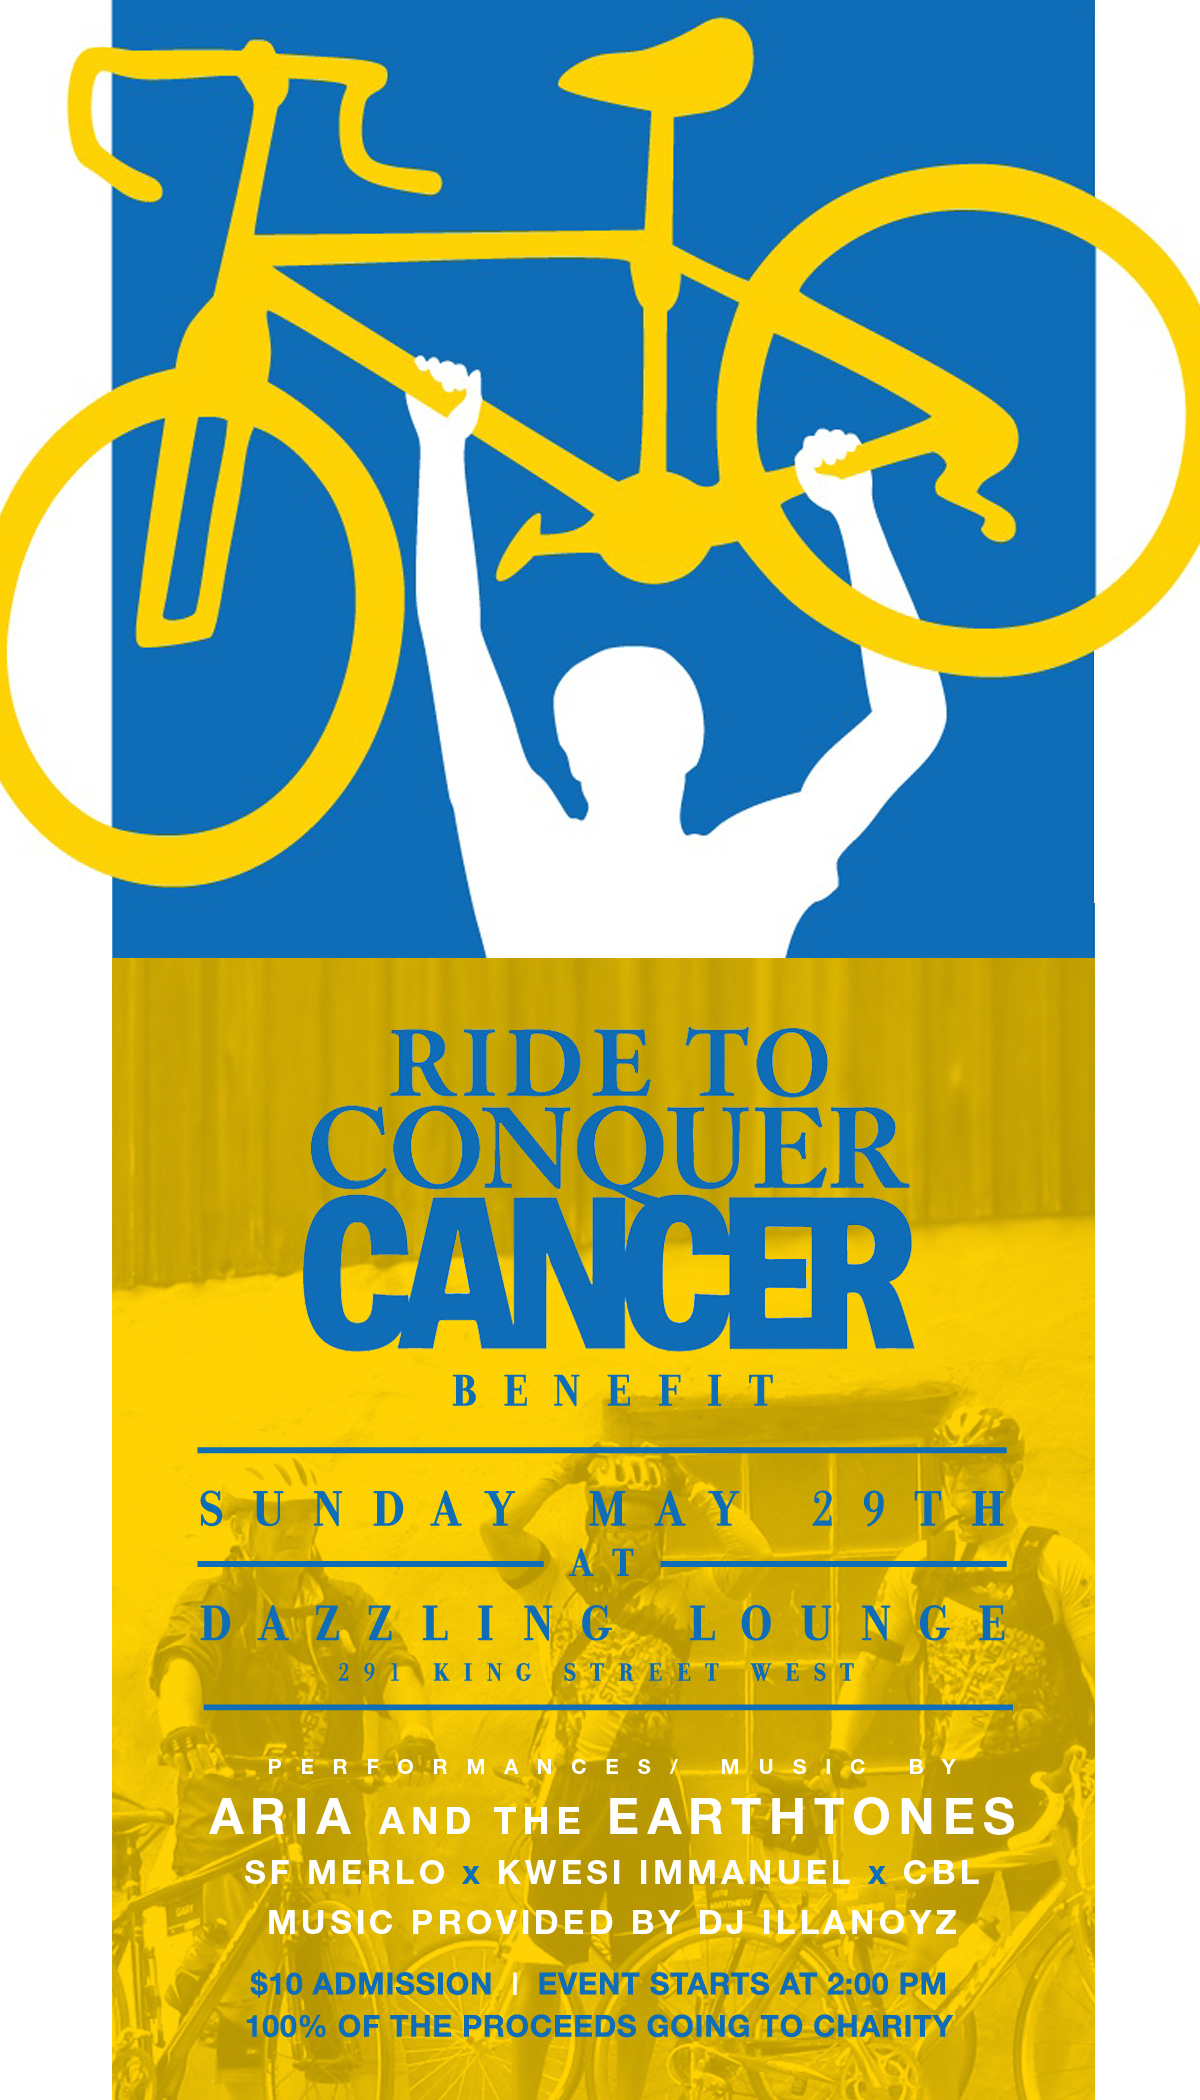 ride_to_concquer_cancer_front-1